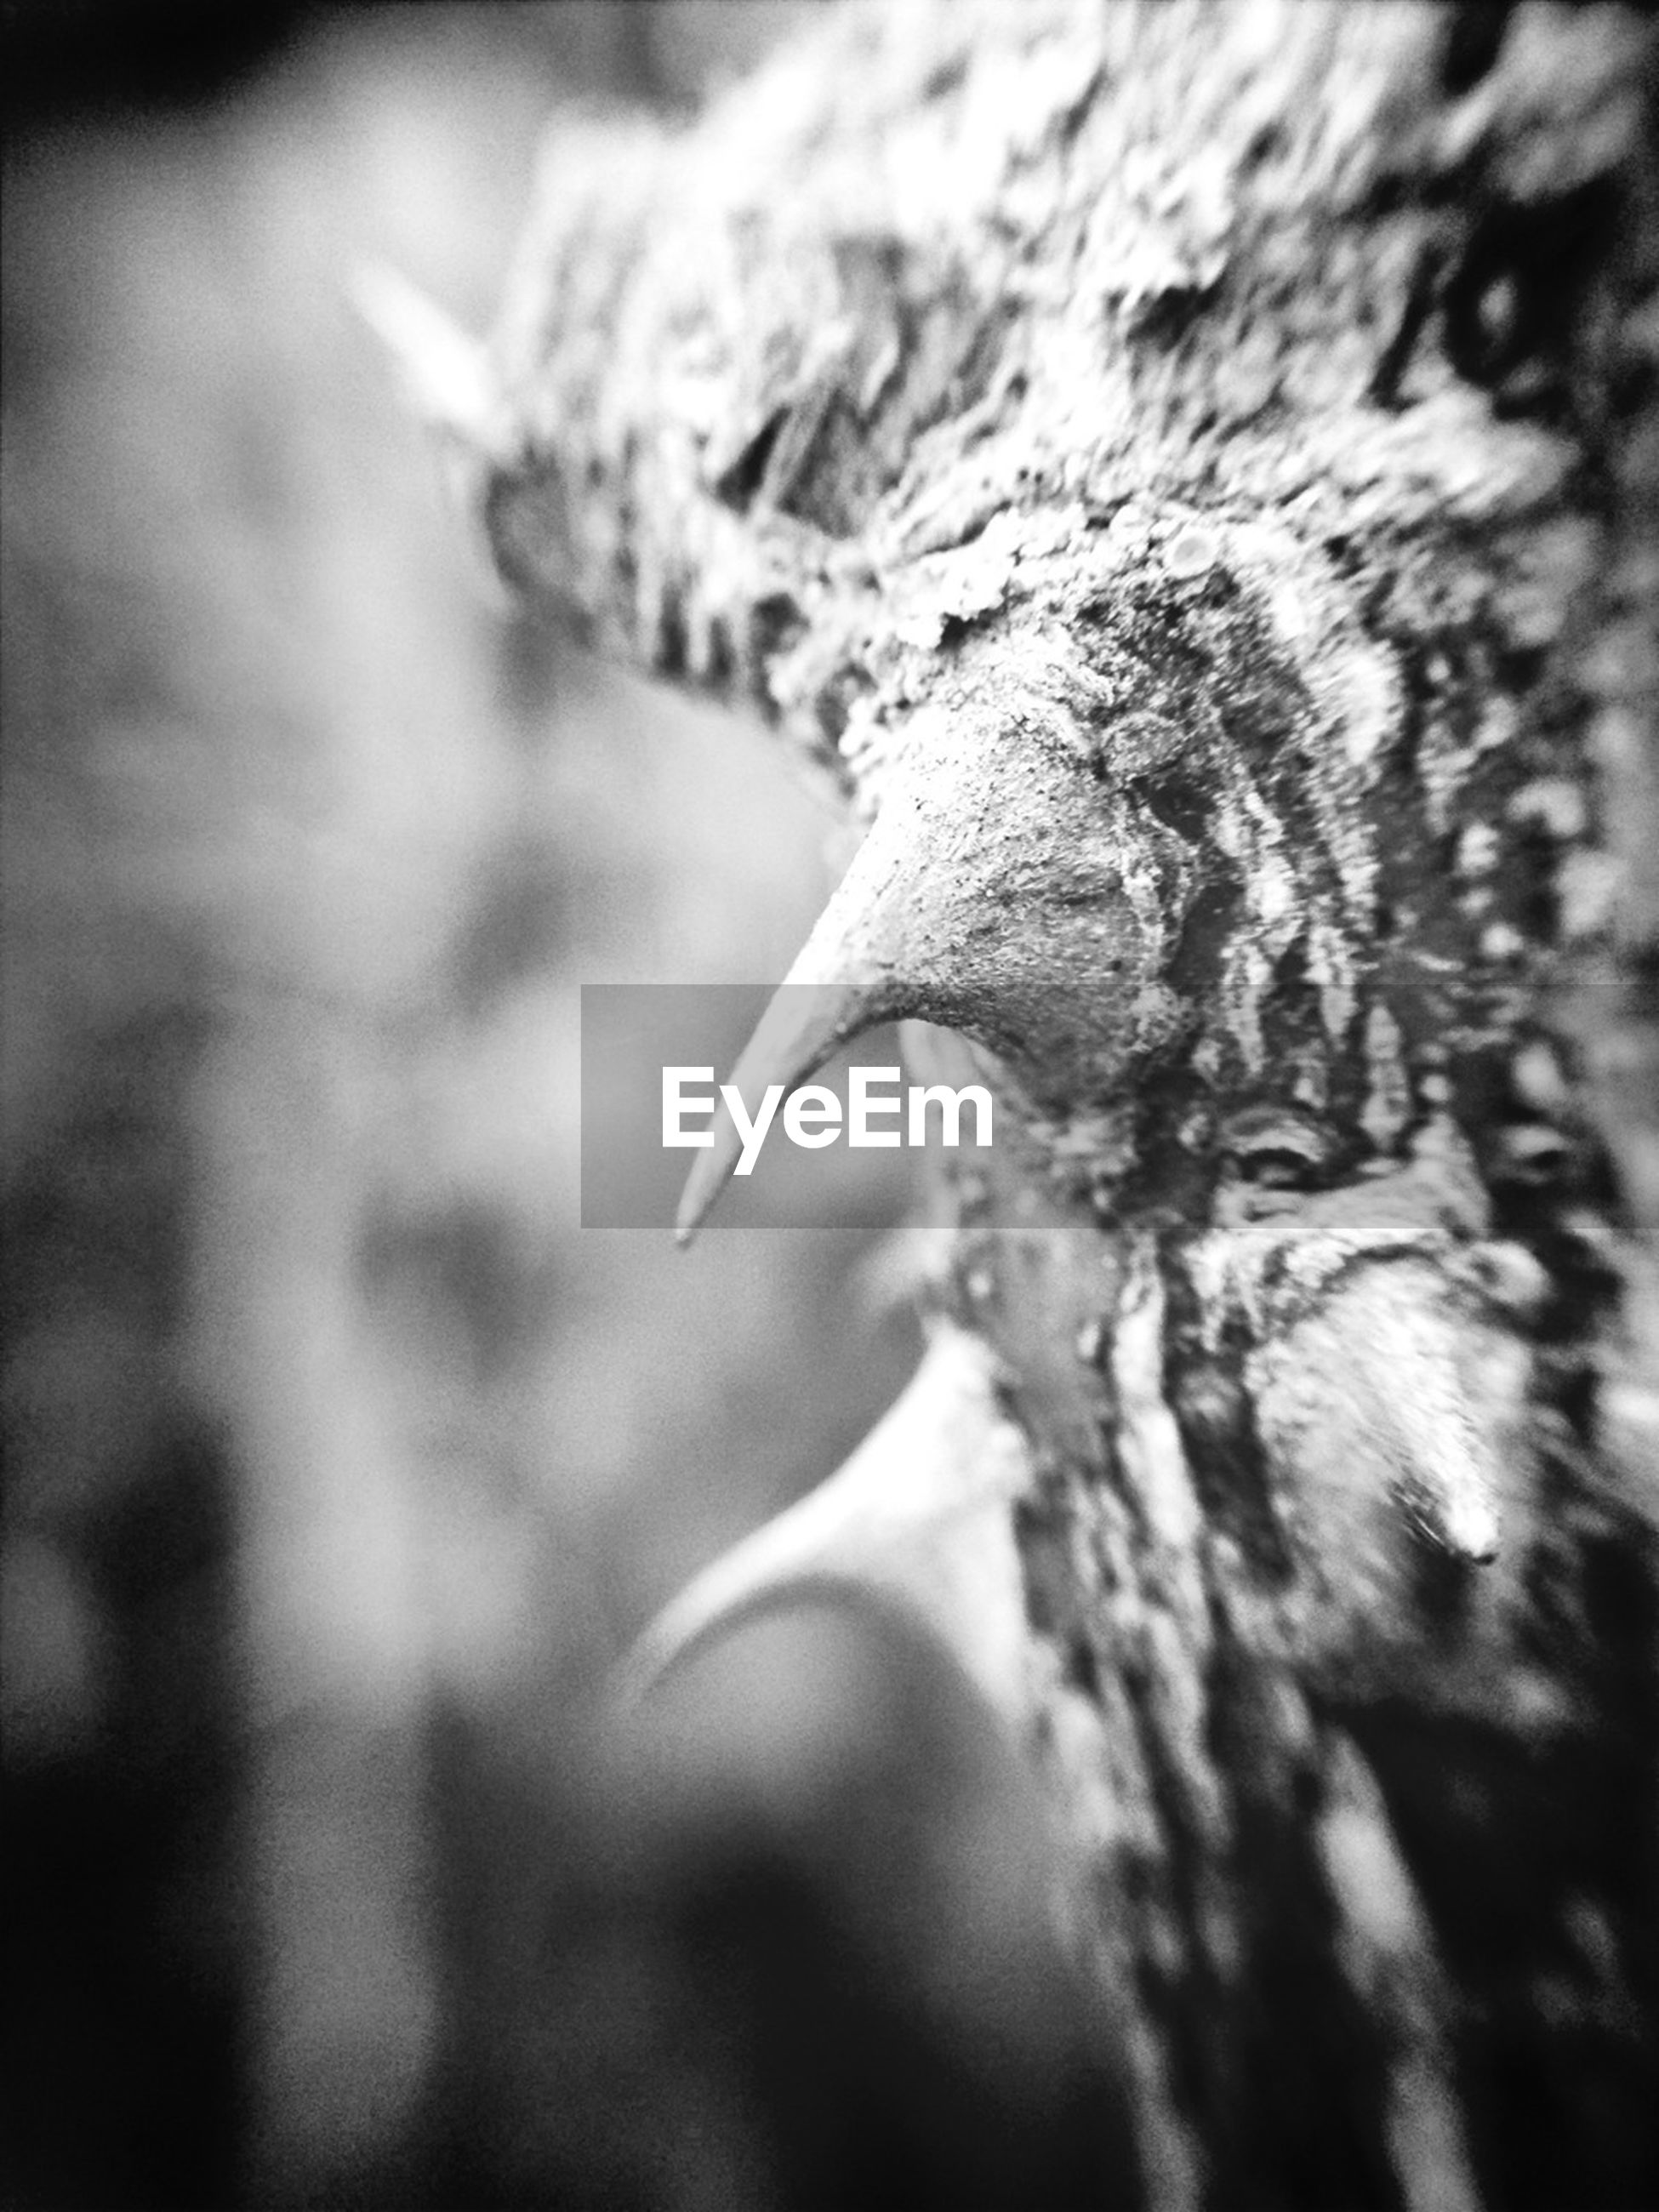 close-up, selective focus, textured, nature, focus on foreground, tree trunk, wood - material, leaf, growth, bark, one animal, day, outdoors, natural pattern, dry, wildlife, lizard, rough, no people, part of